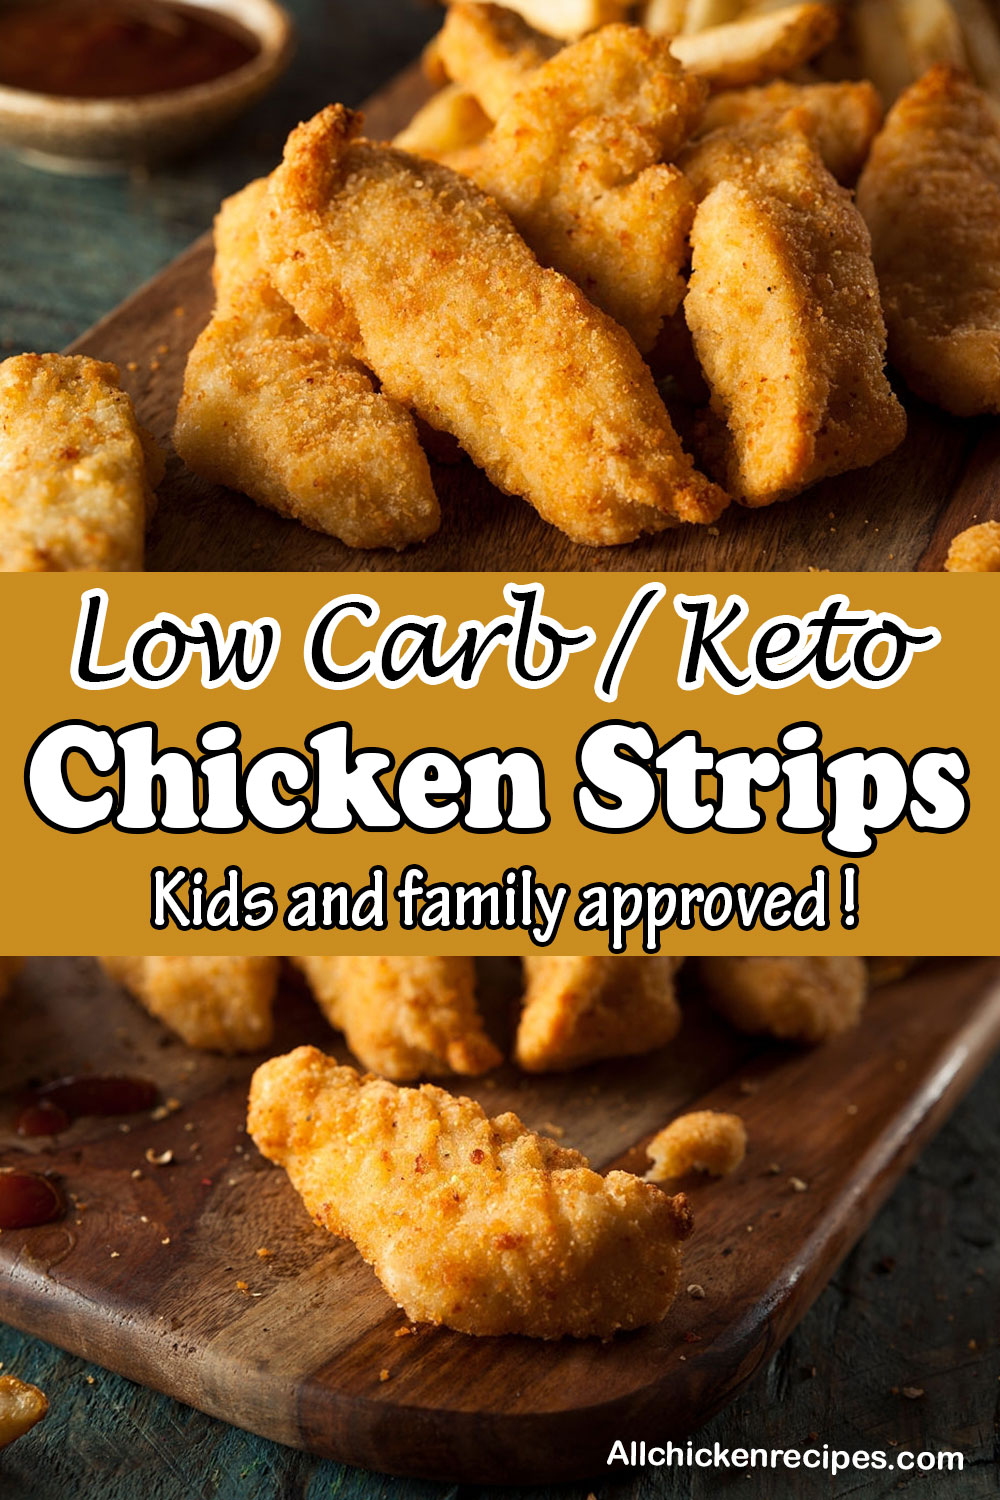 Low Carb Keto Chicken Strips